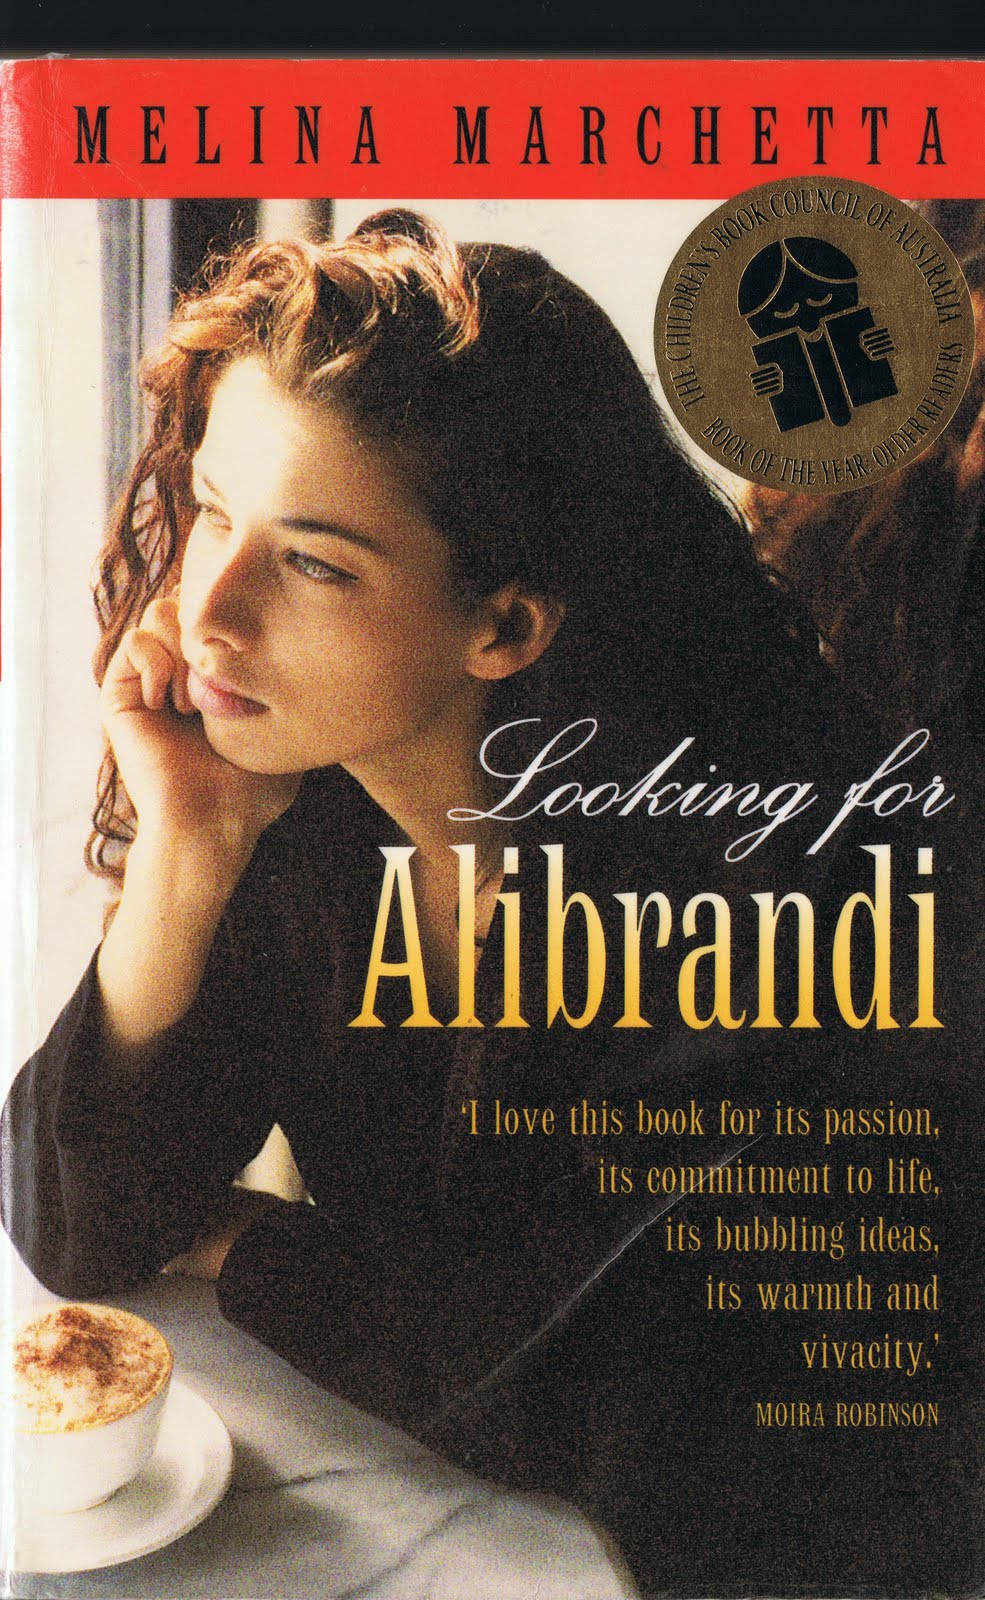 Little Library Of Rescued Books: Looking For Alibrandi By